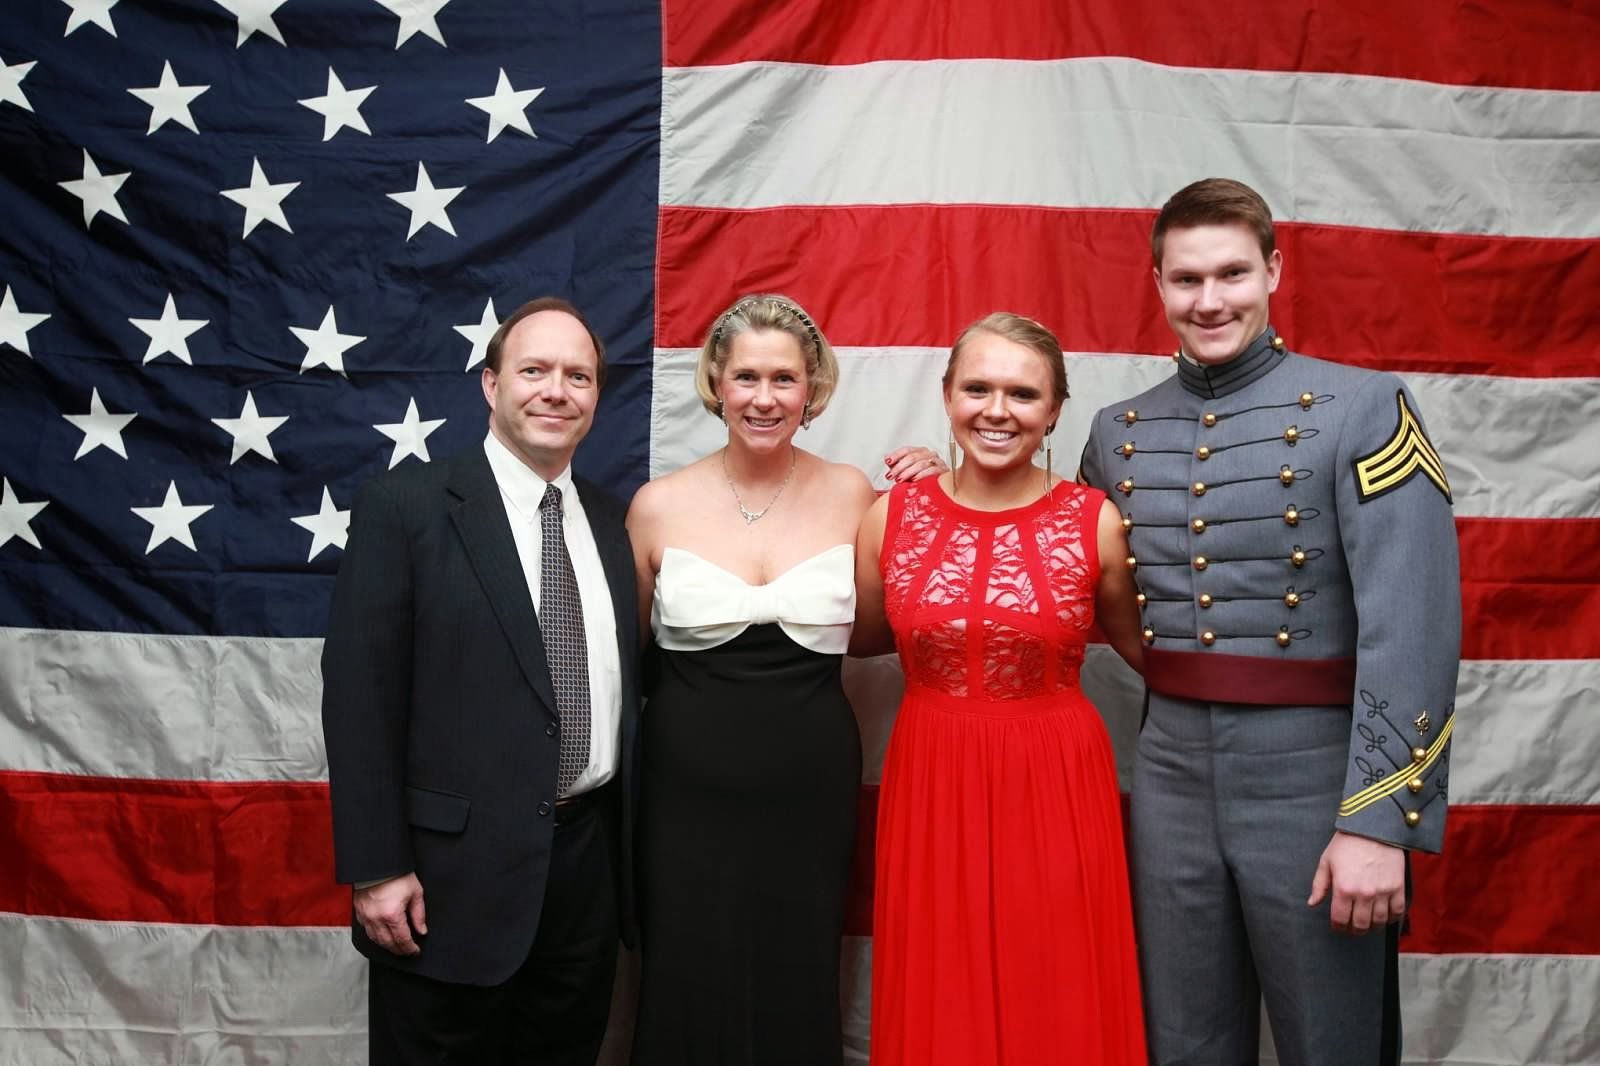 NE Ohio All Academy Military Ball, December 27, 2013